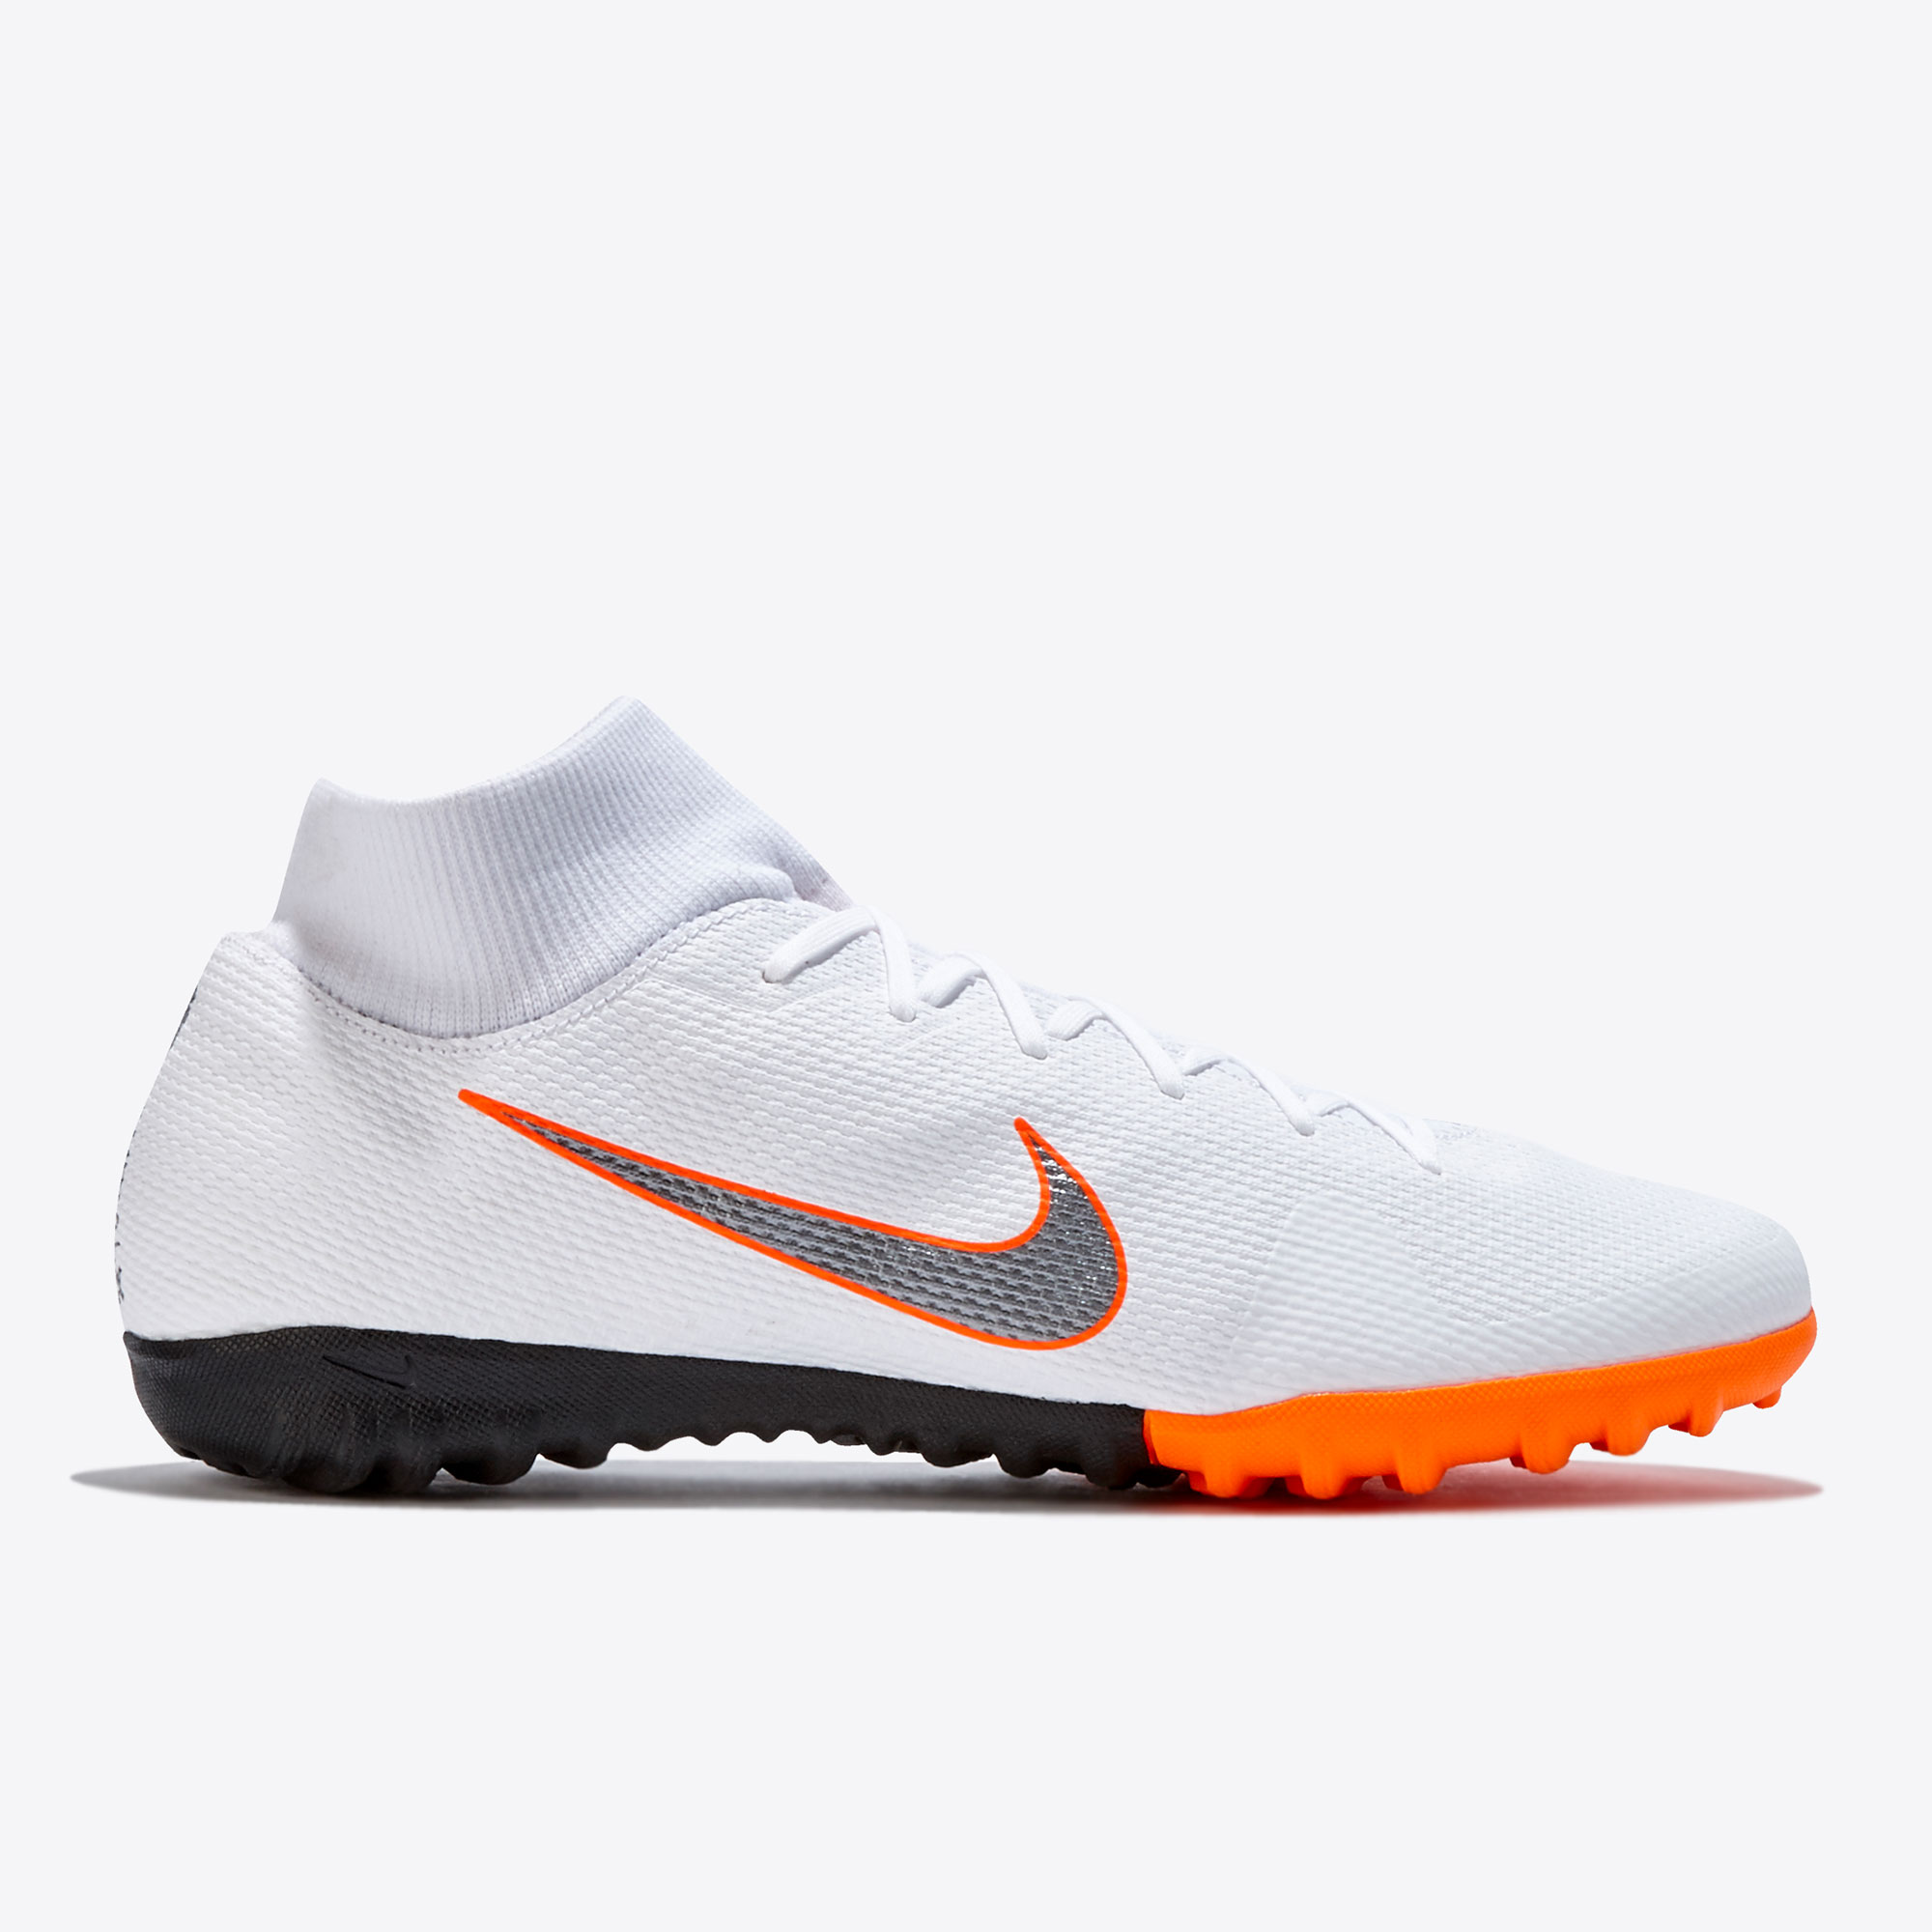 Chaussures Nike MercurialX Superfly 6 Academy pour surface synthétique - Enfants